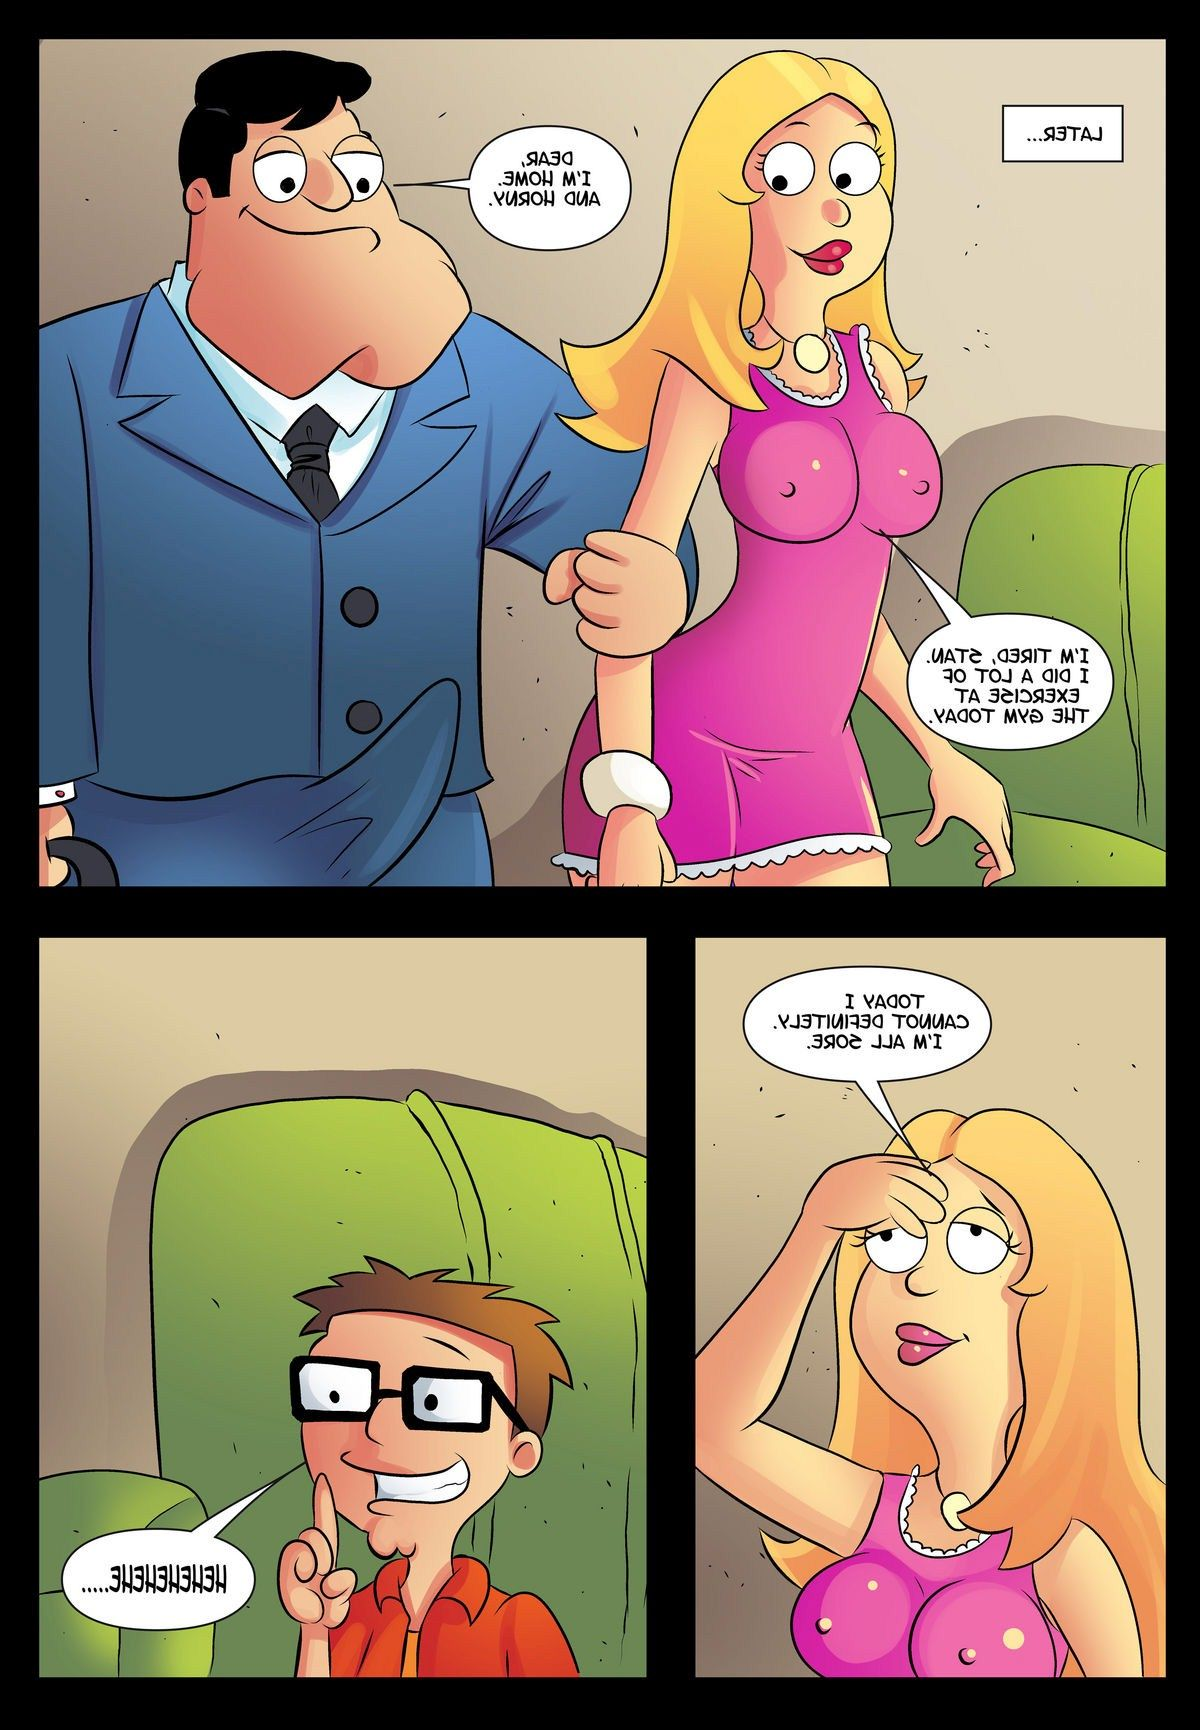 Sorry, that American dad sex doll lie